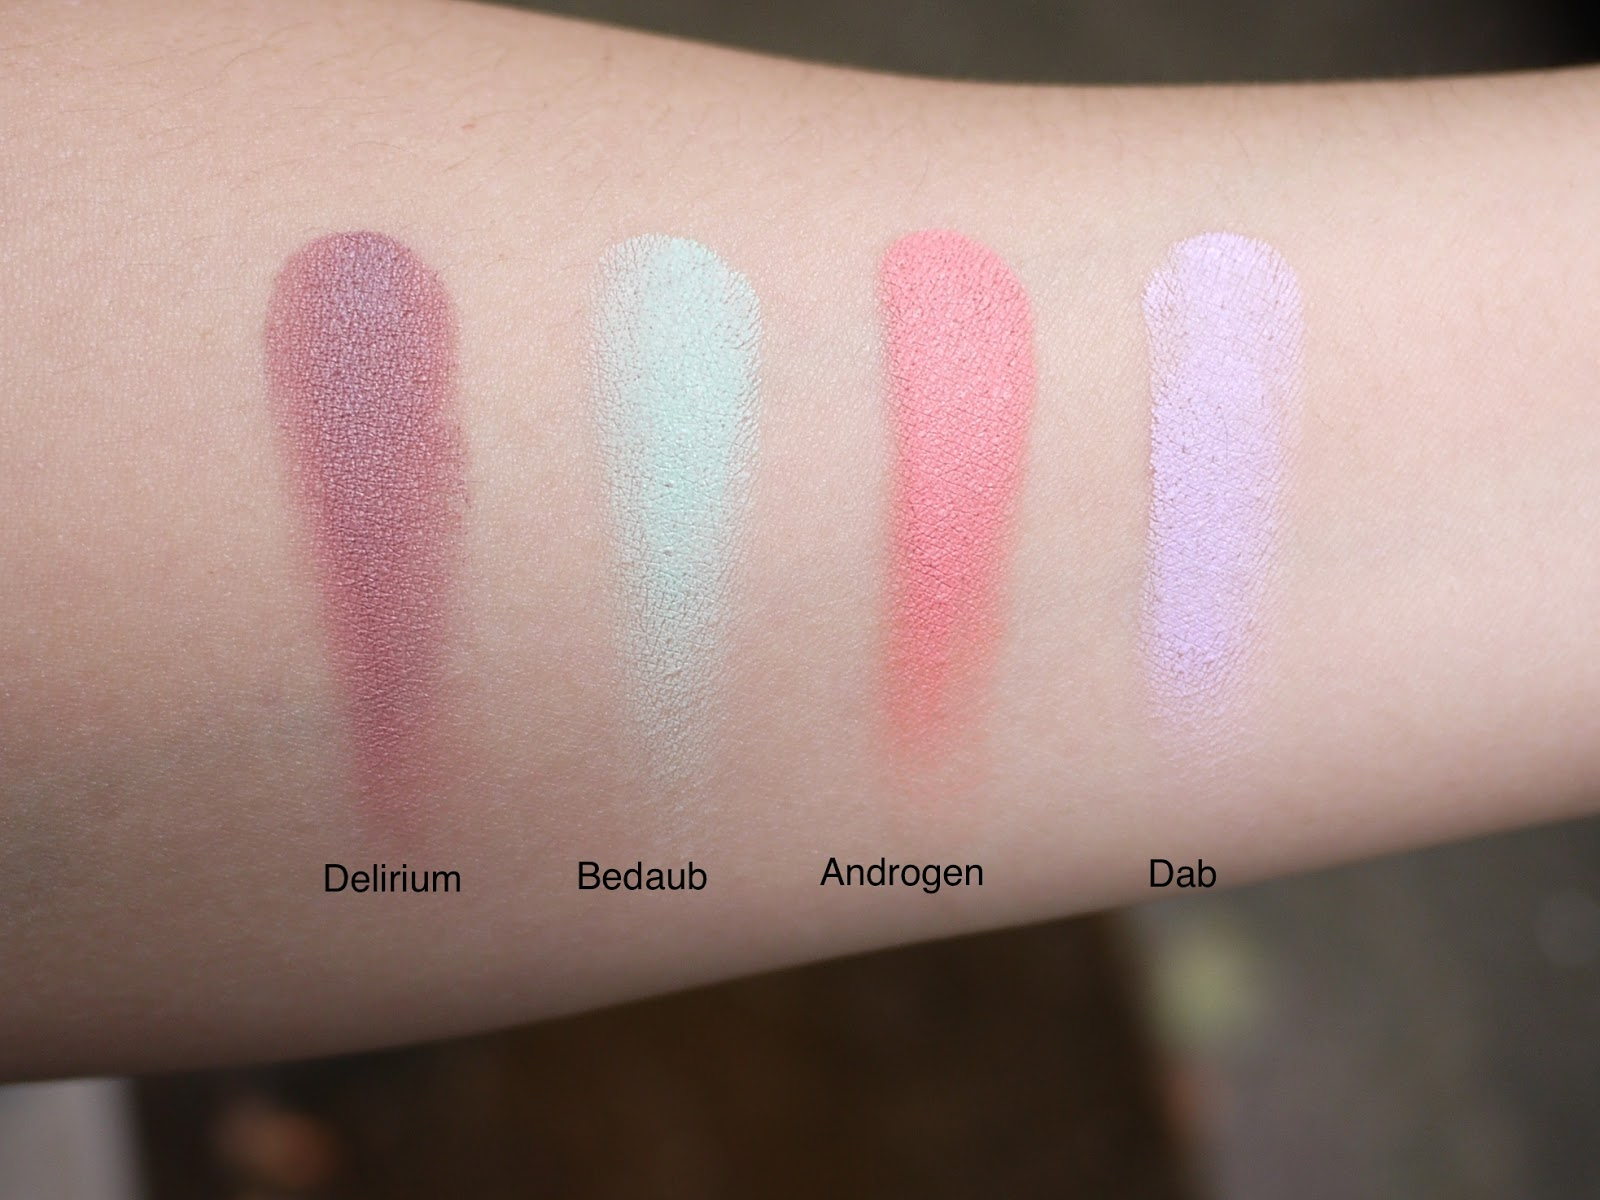 illamasqua cream pigments deliurm bedaub androgen dab review swatch